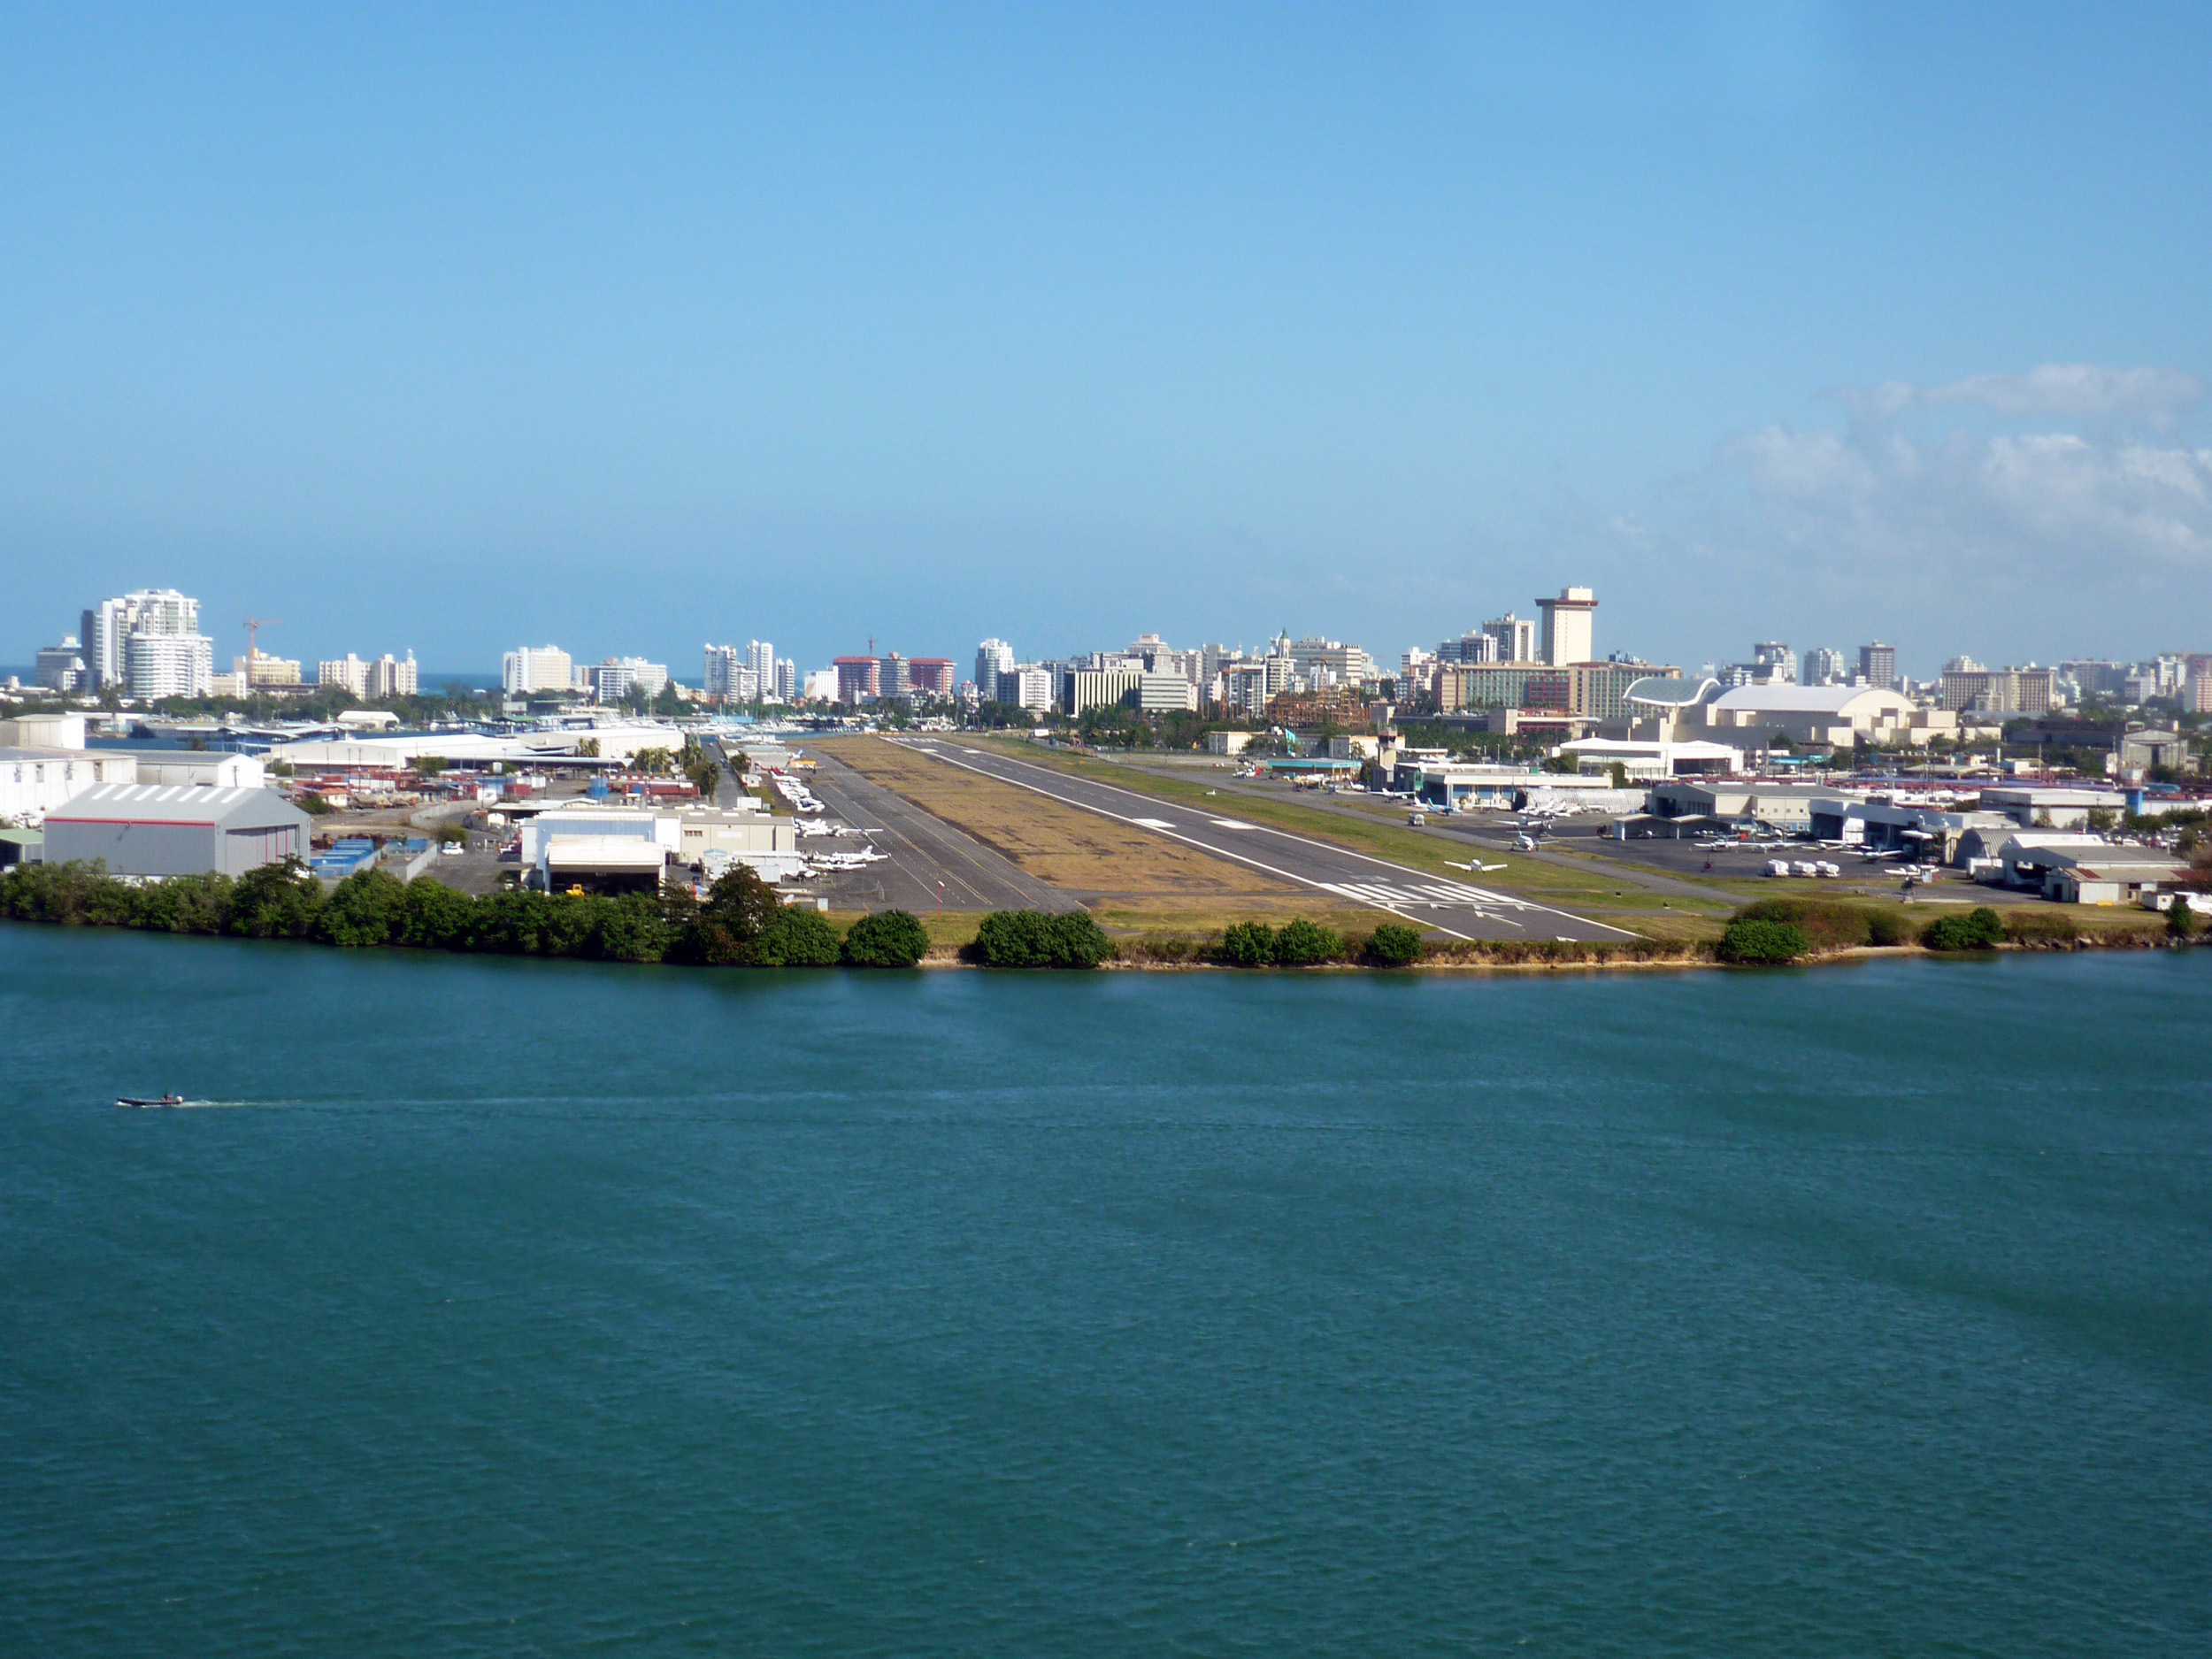 looking down the runway of san juan airport, puerto rico